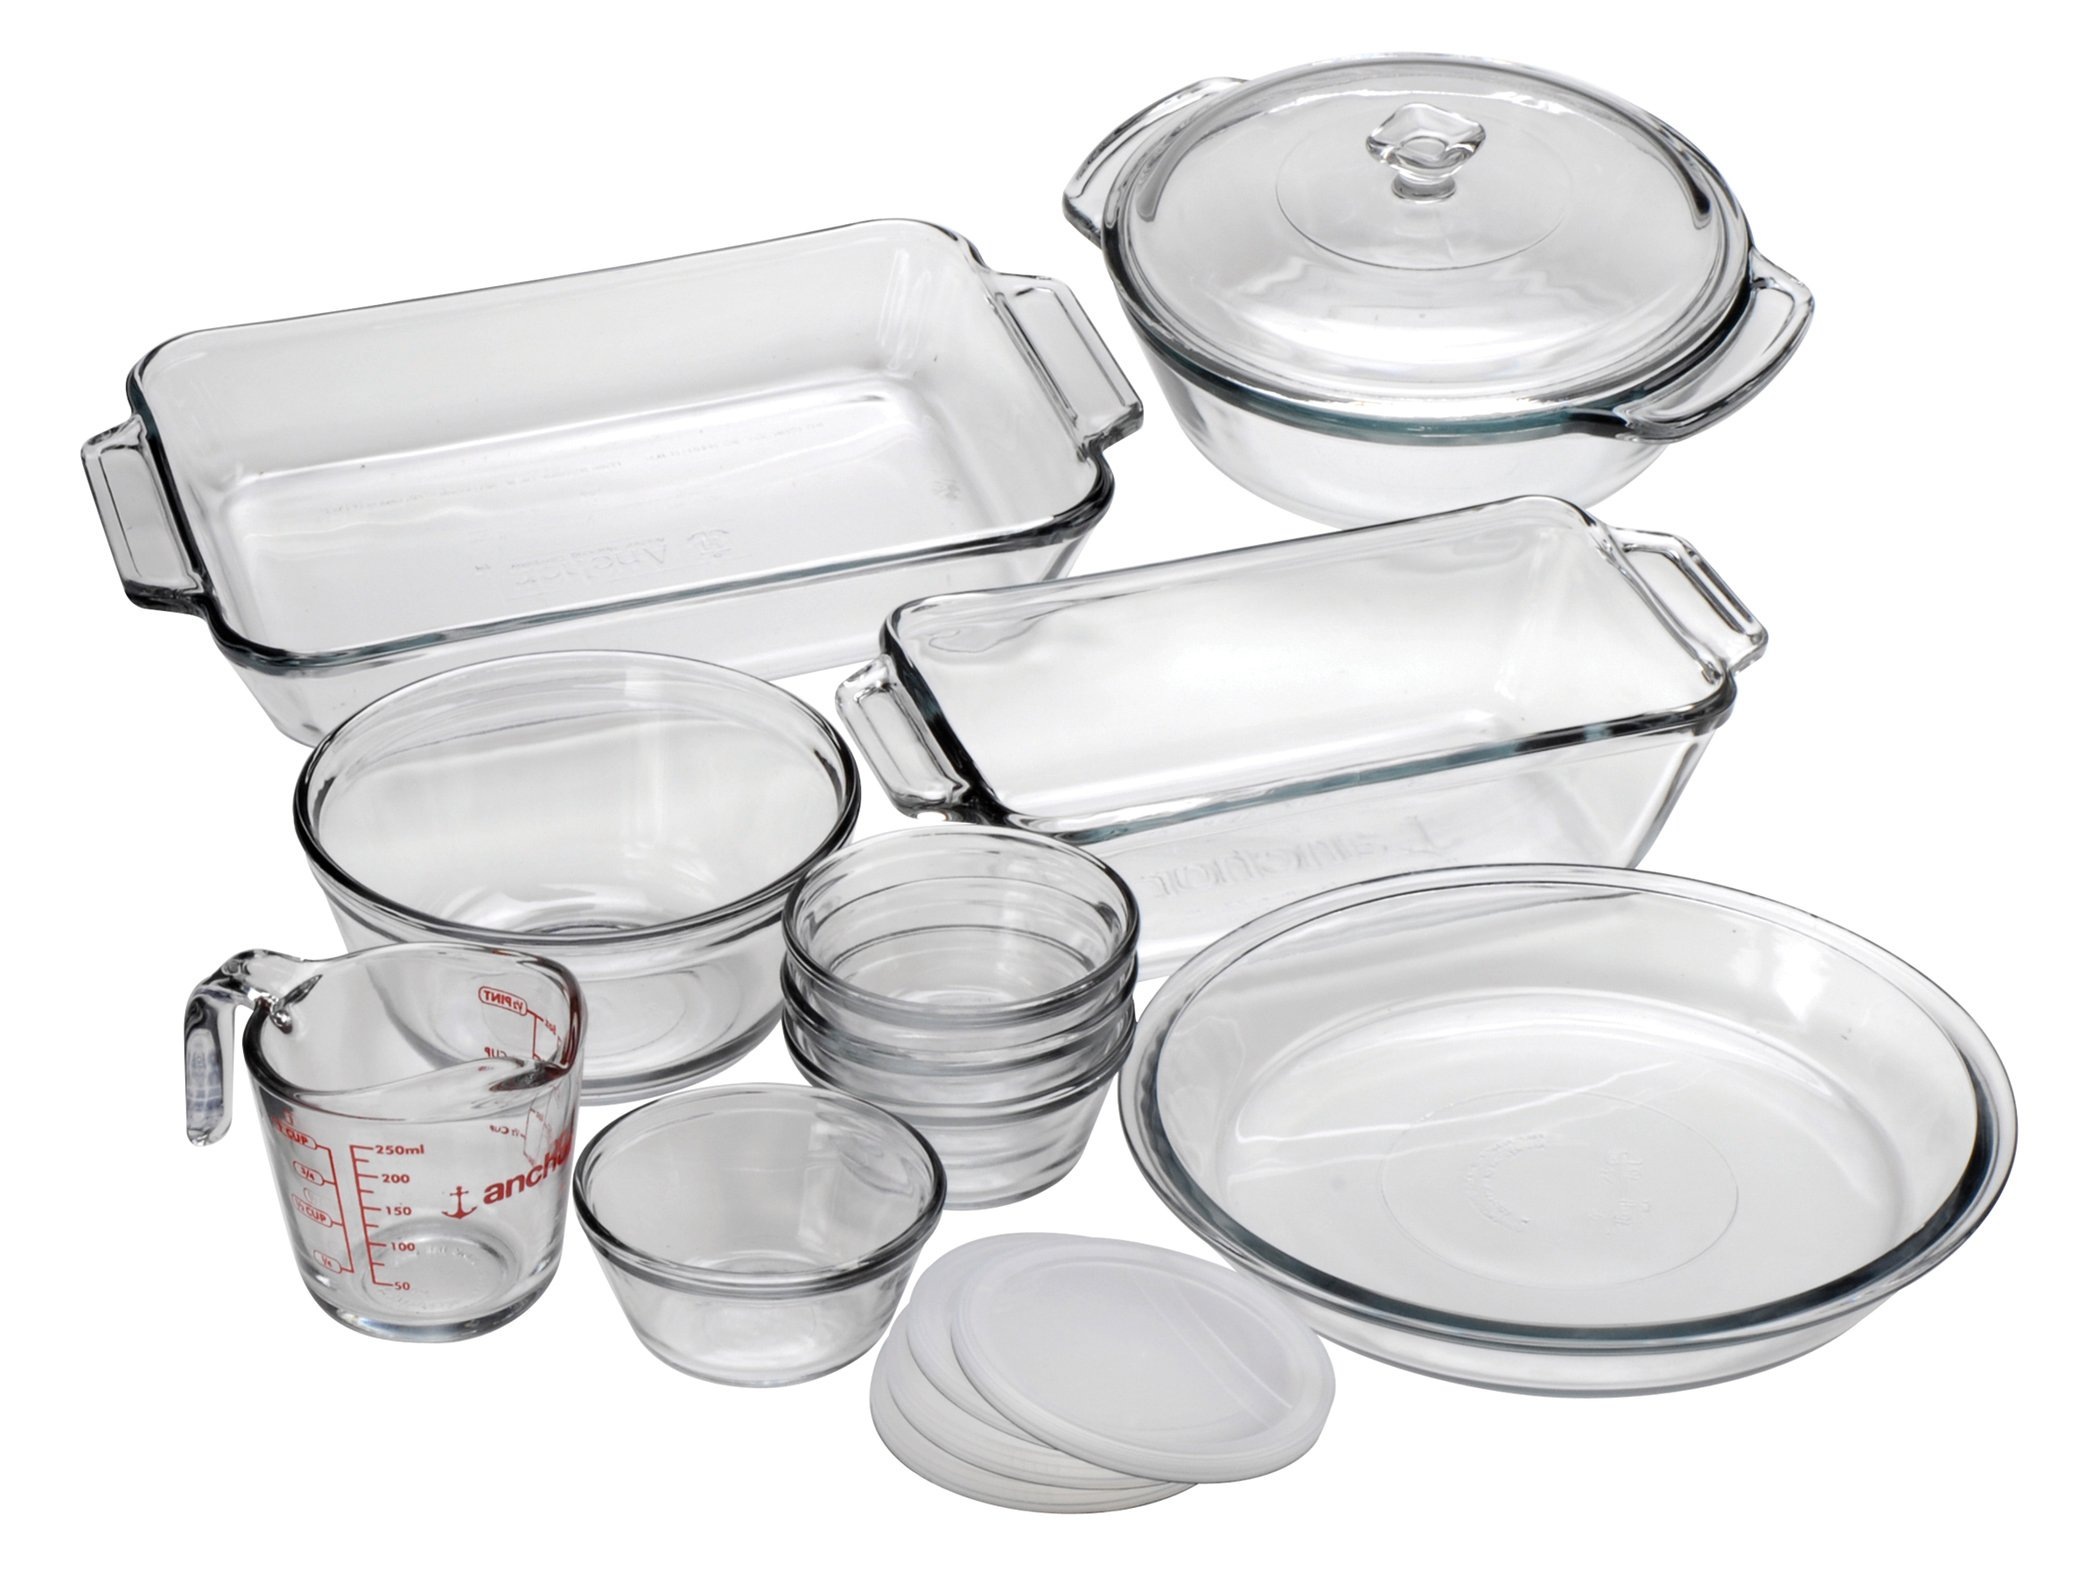 Anchor Hocking Oven Basics 15-Piece Glass Bakeware Set with Casserole Dish, Pie Plate, Measuring Cup, Mixing Bowl, and Custard Cups with Lids